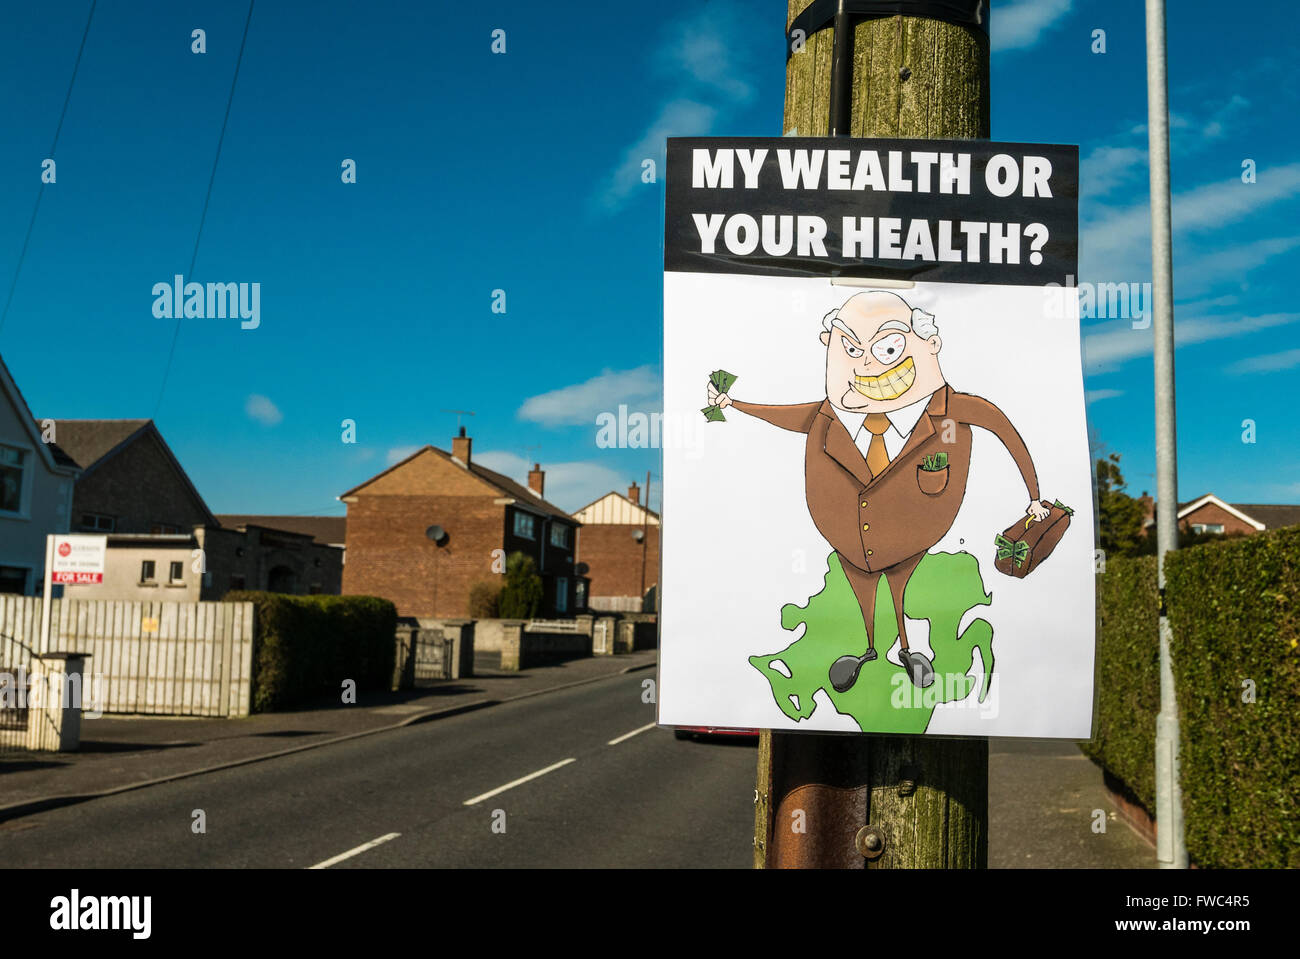 Protest banner attached to a lamppost with the slogan 'My wealth or your health?' - Stock Image